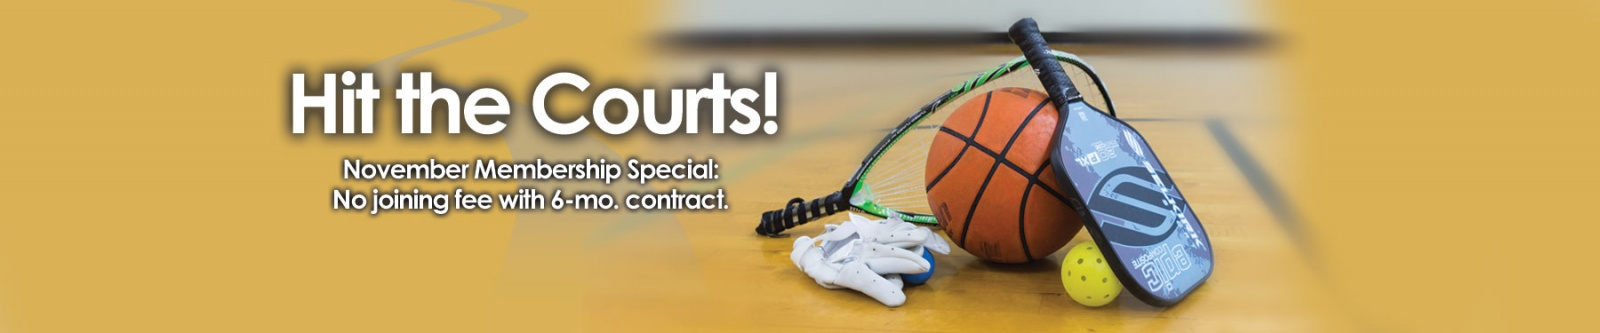 Hit the Courts - November Membership Special